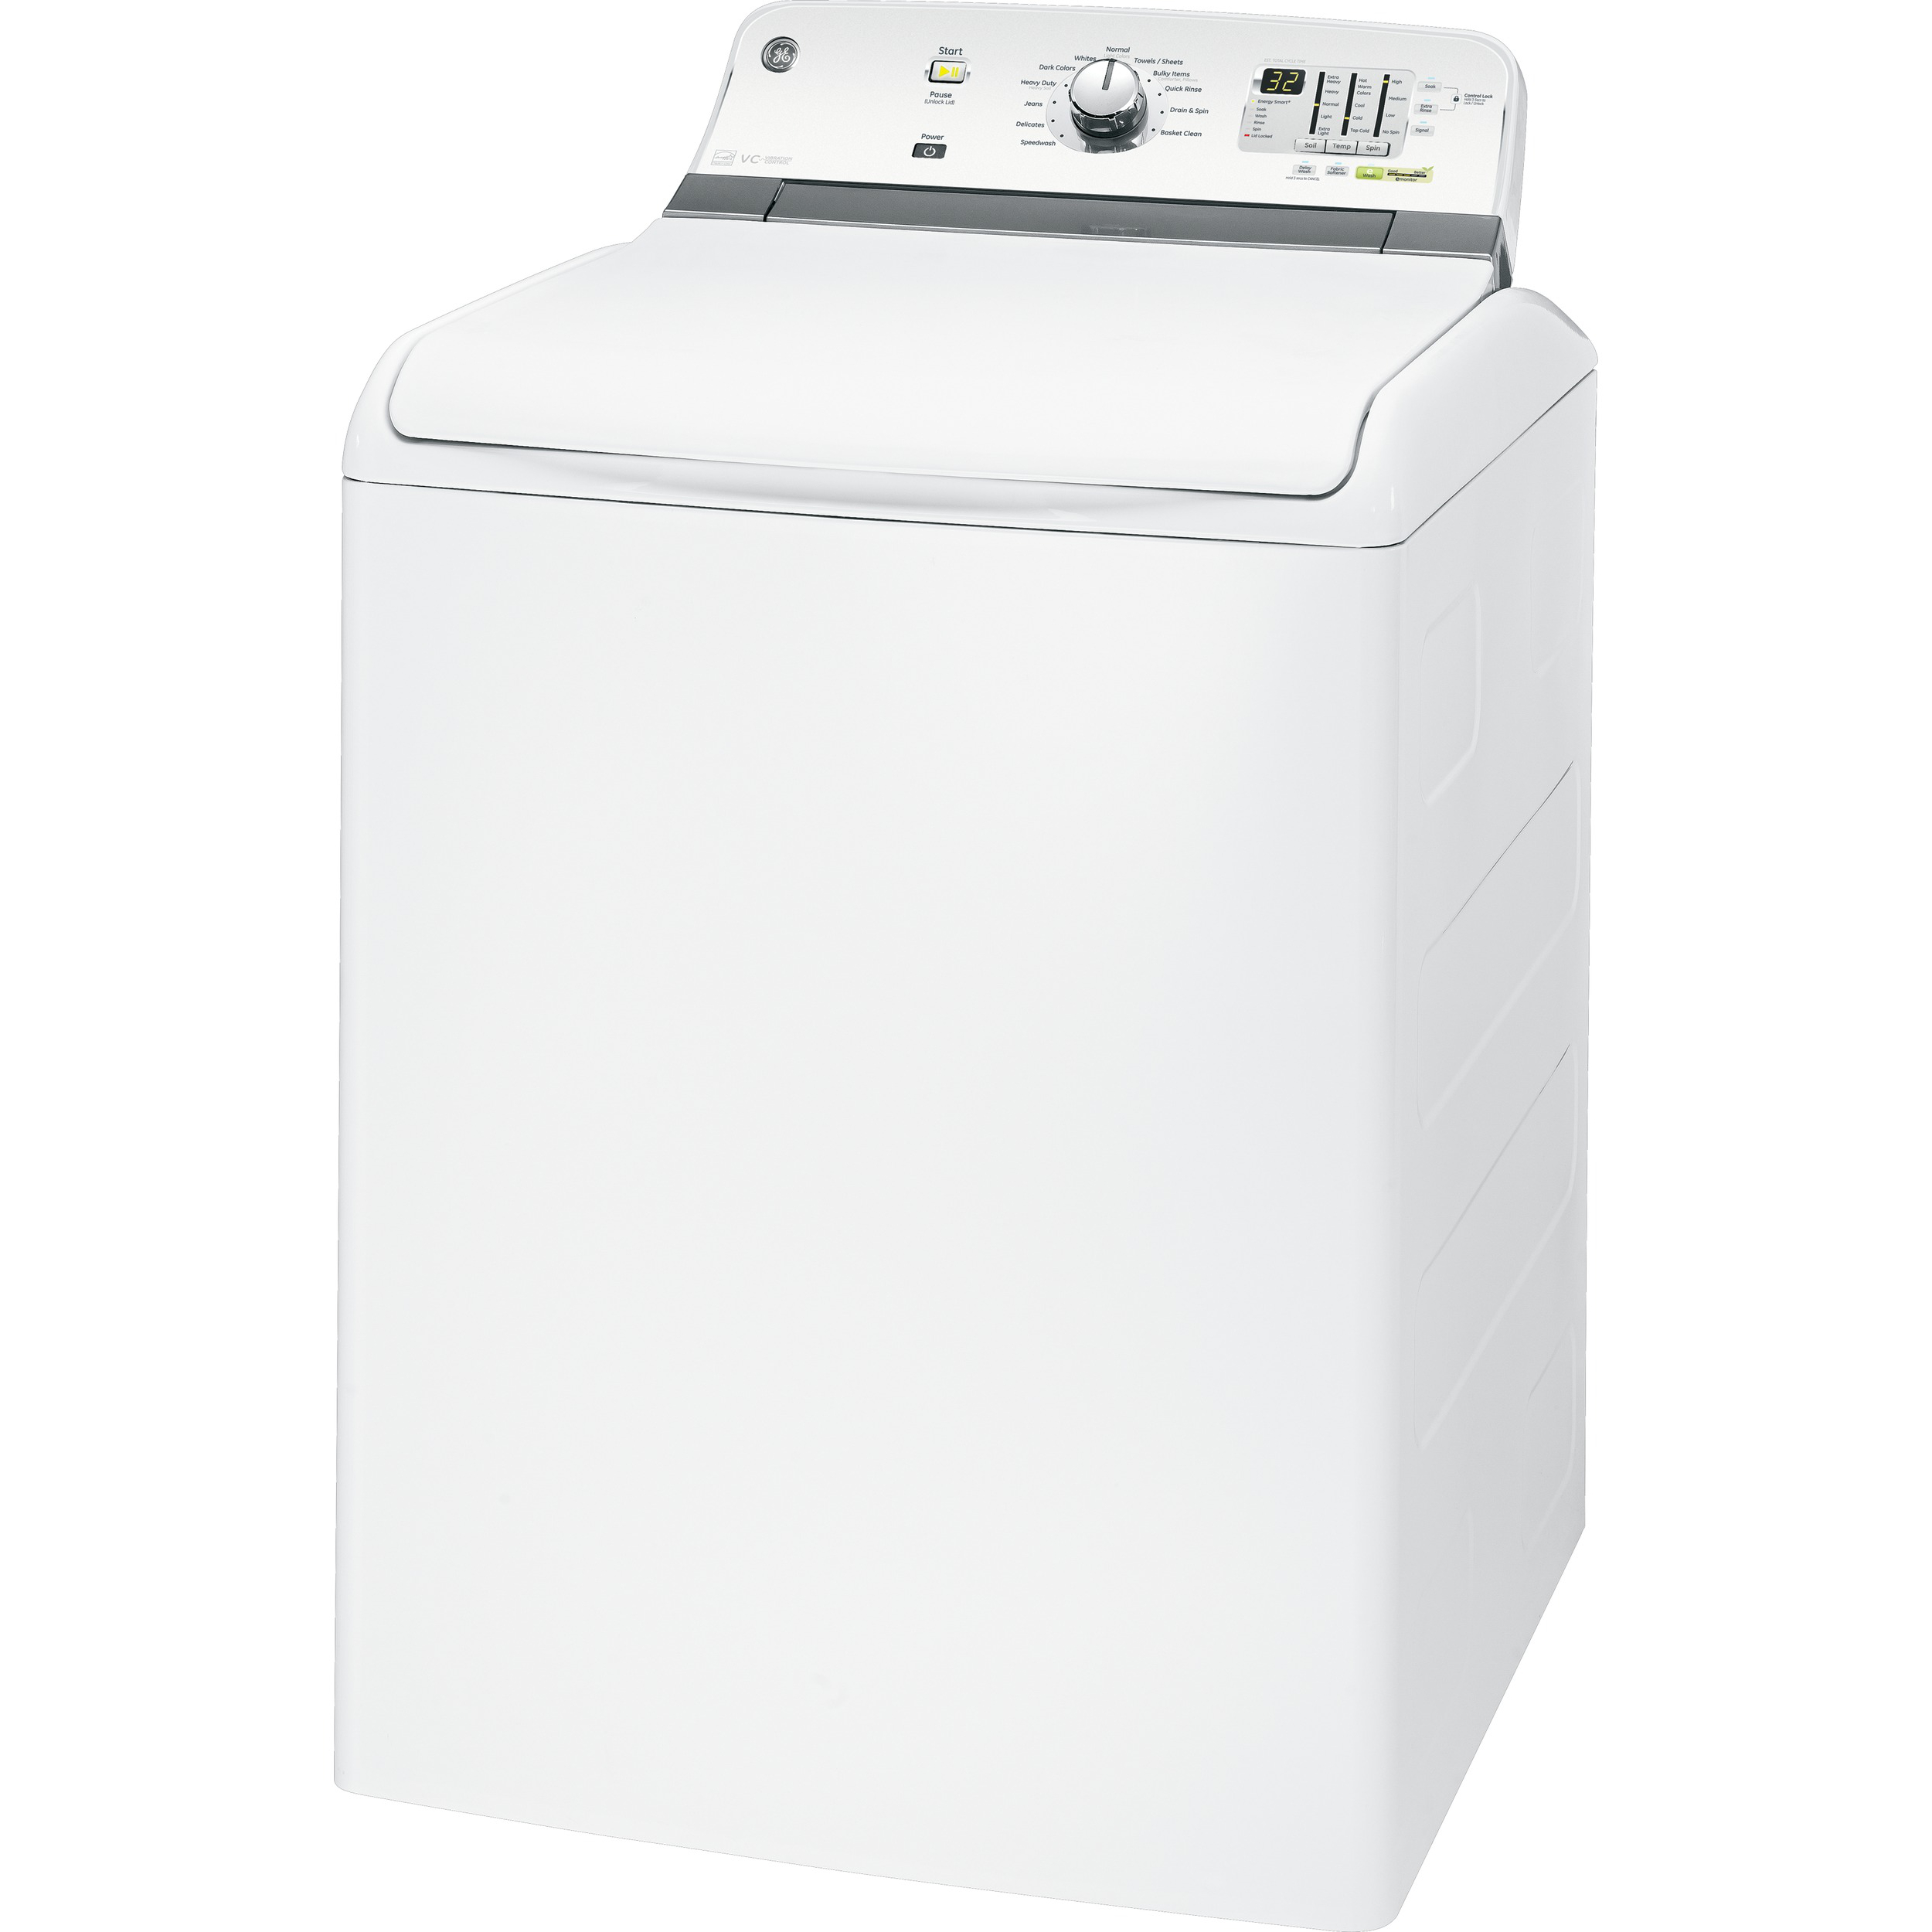 GE 4.6 cu. ft. High-Efficiency Top-Load Washer w/ Stainless Steel Basket - White